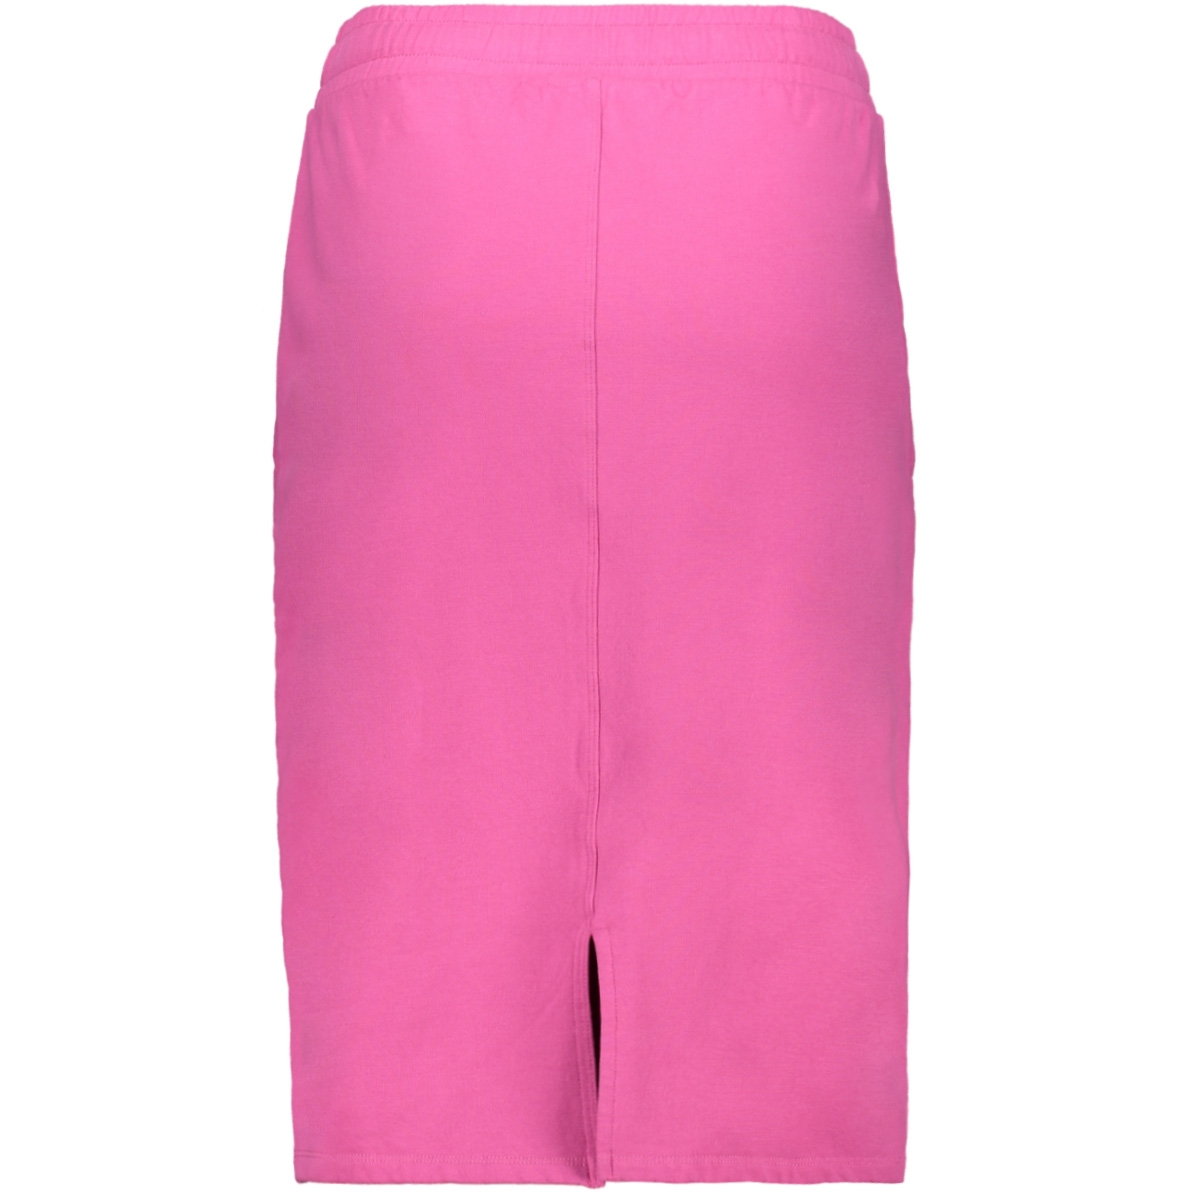 skirt 20-100-8103 10 days rok happy pink